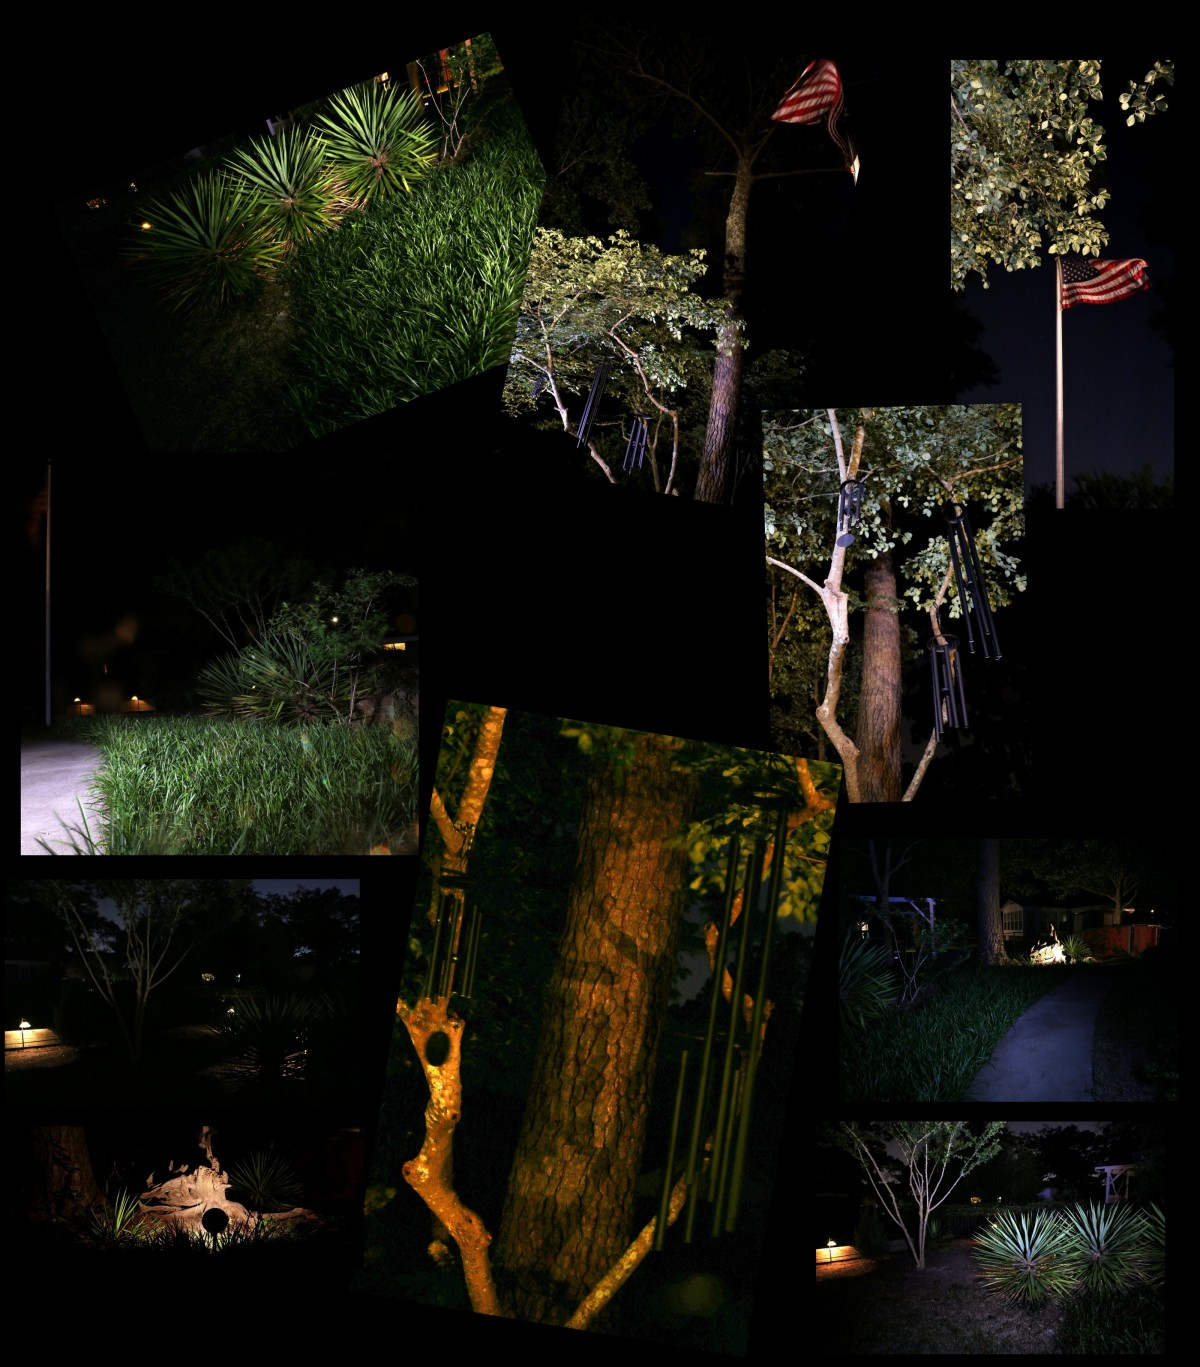 Photography ~ Night–Backyard Landscaping Collage, 05/19